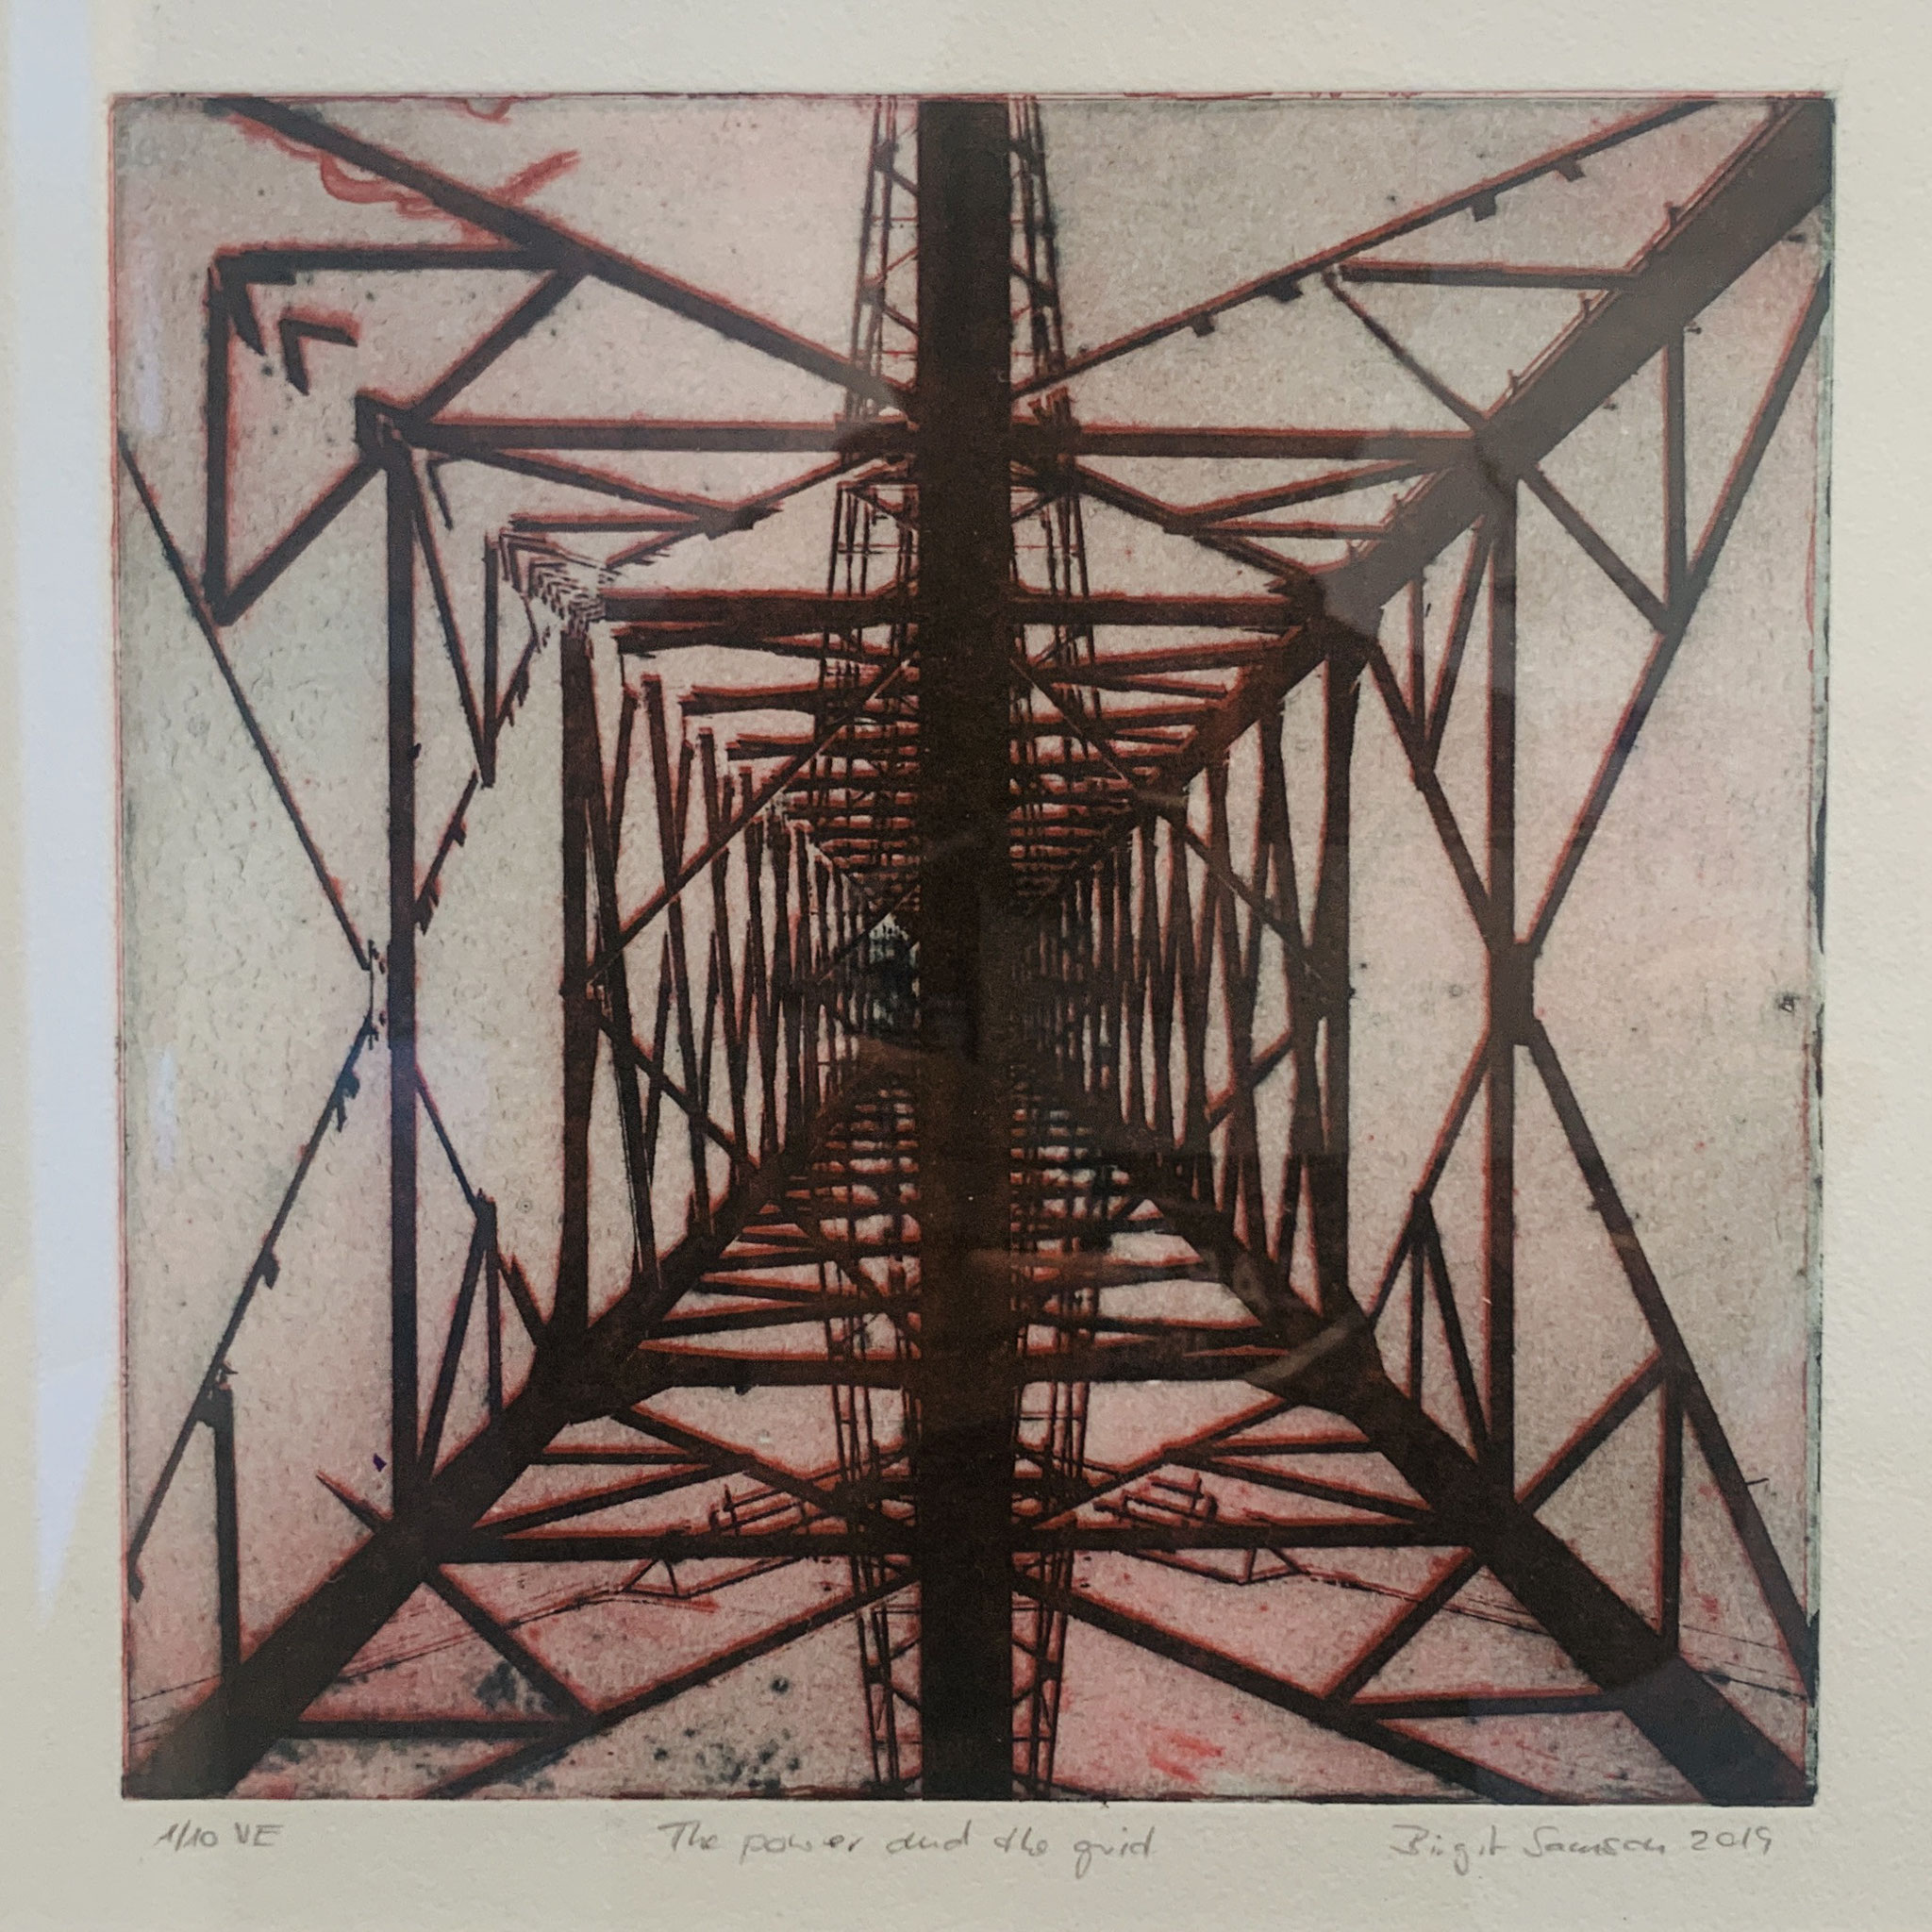 32. / 33. Birgit Samson, The Power and the Grid 1 + 2, Intagliotypie, 2019, je 120 €